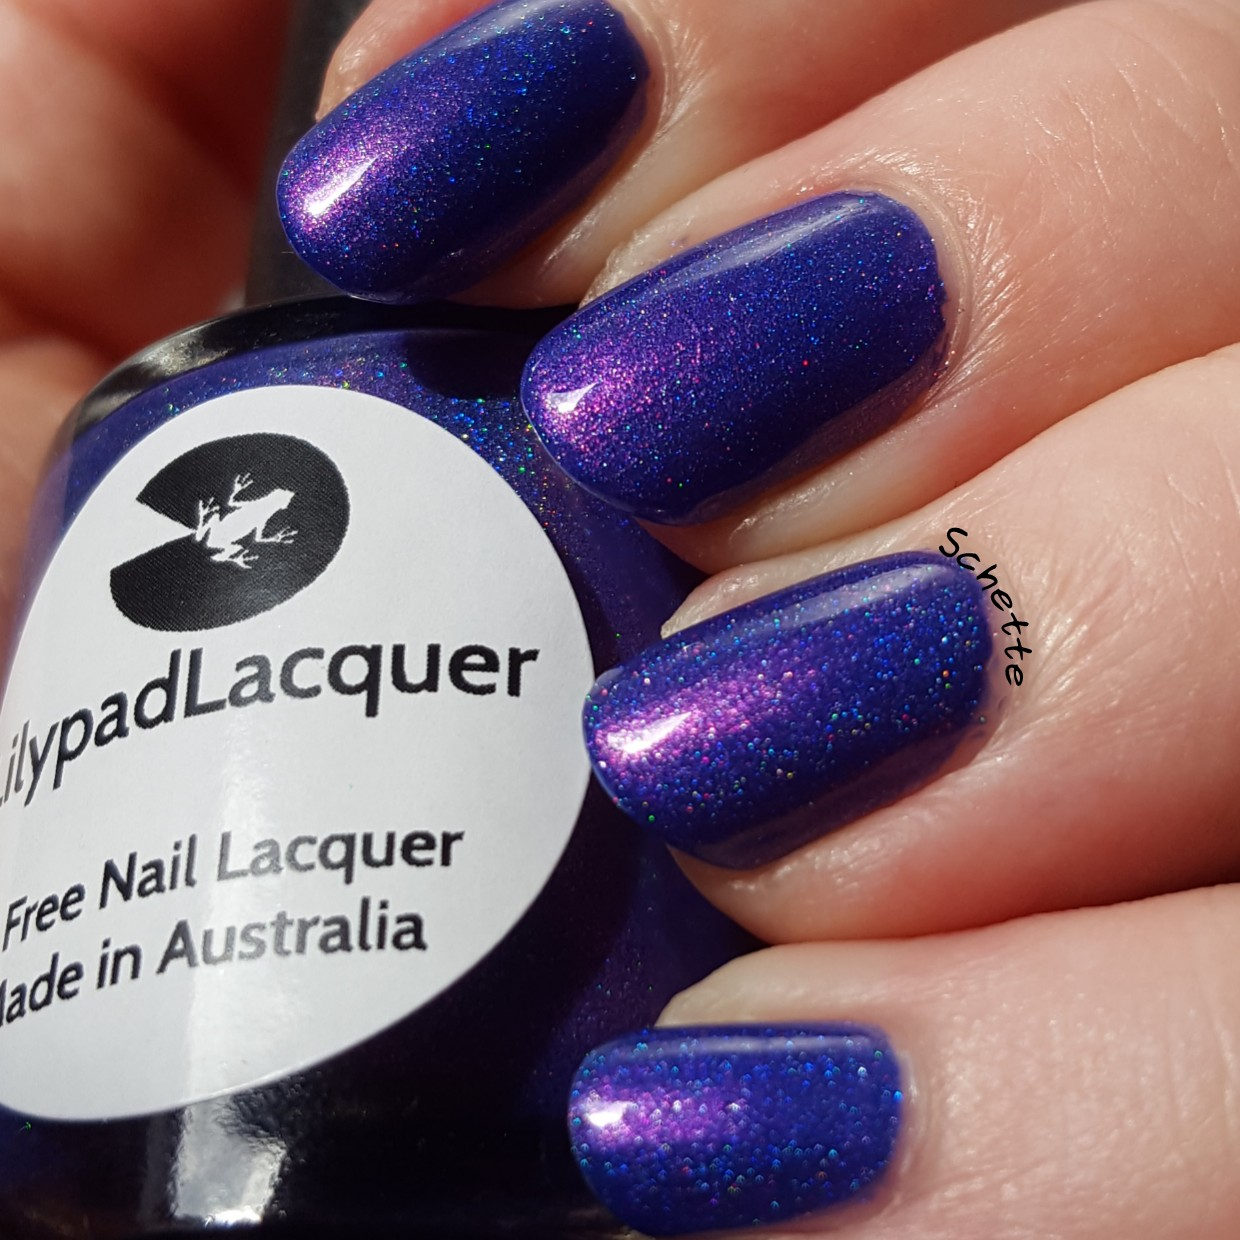 Lilypad Lacquer - Supernatural